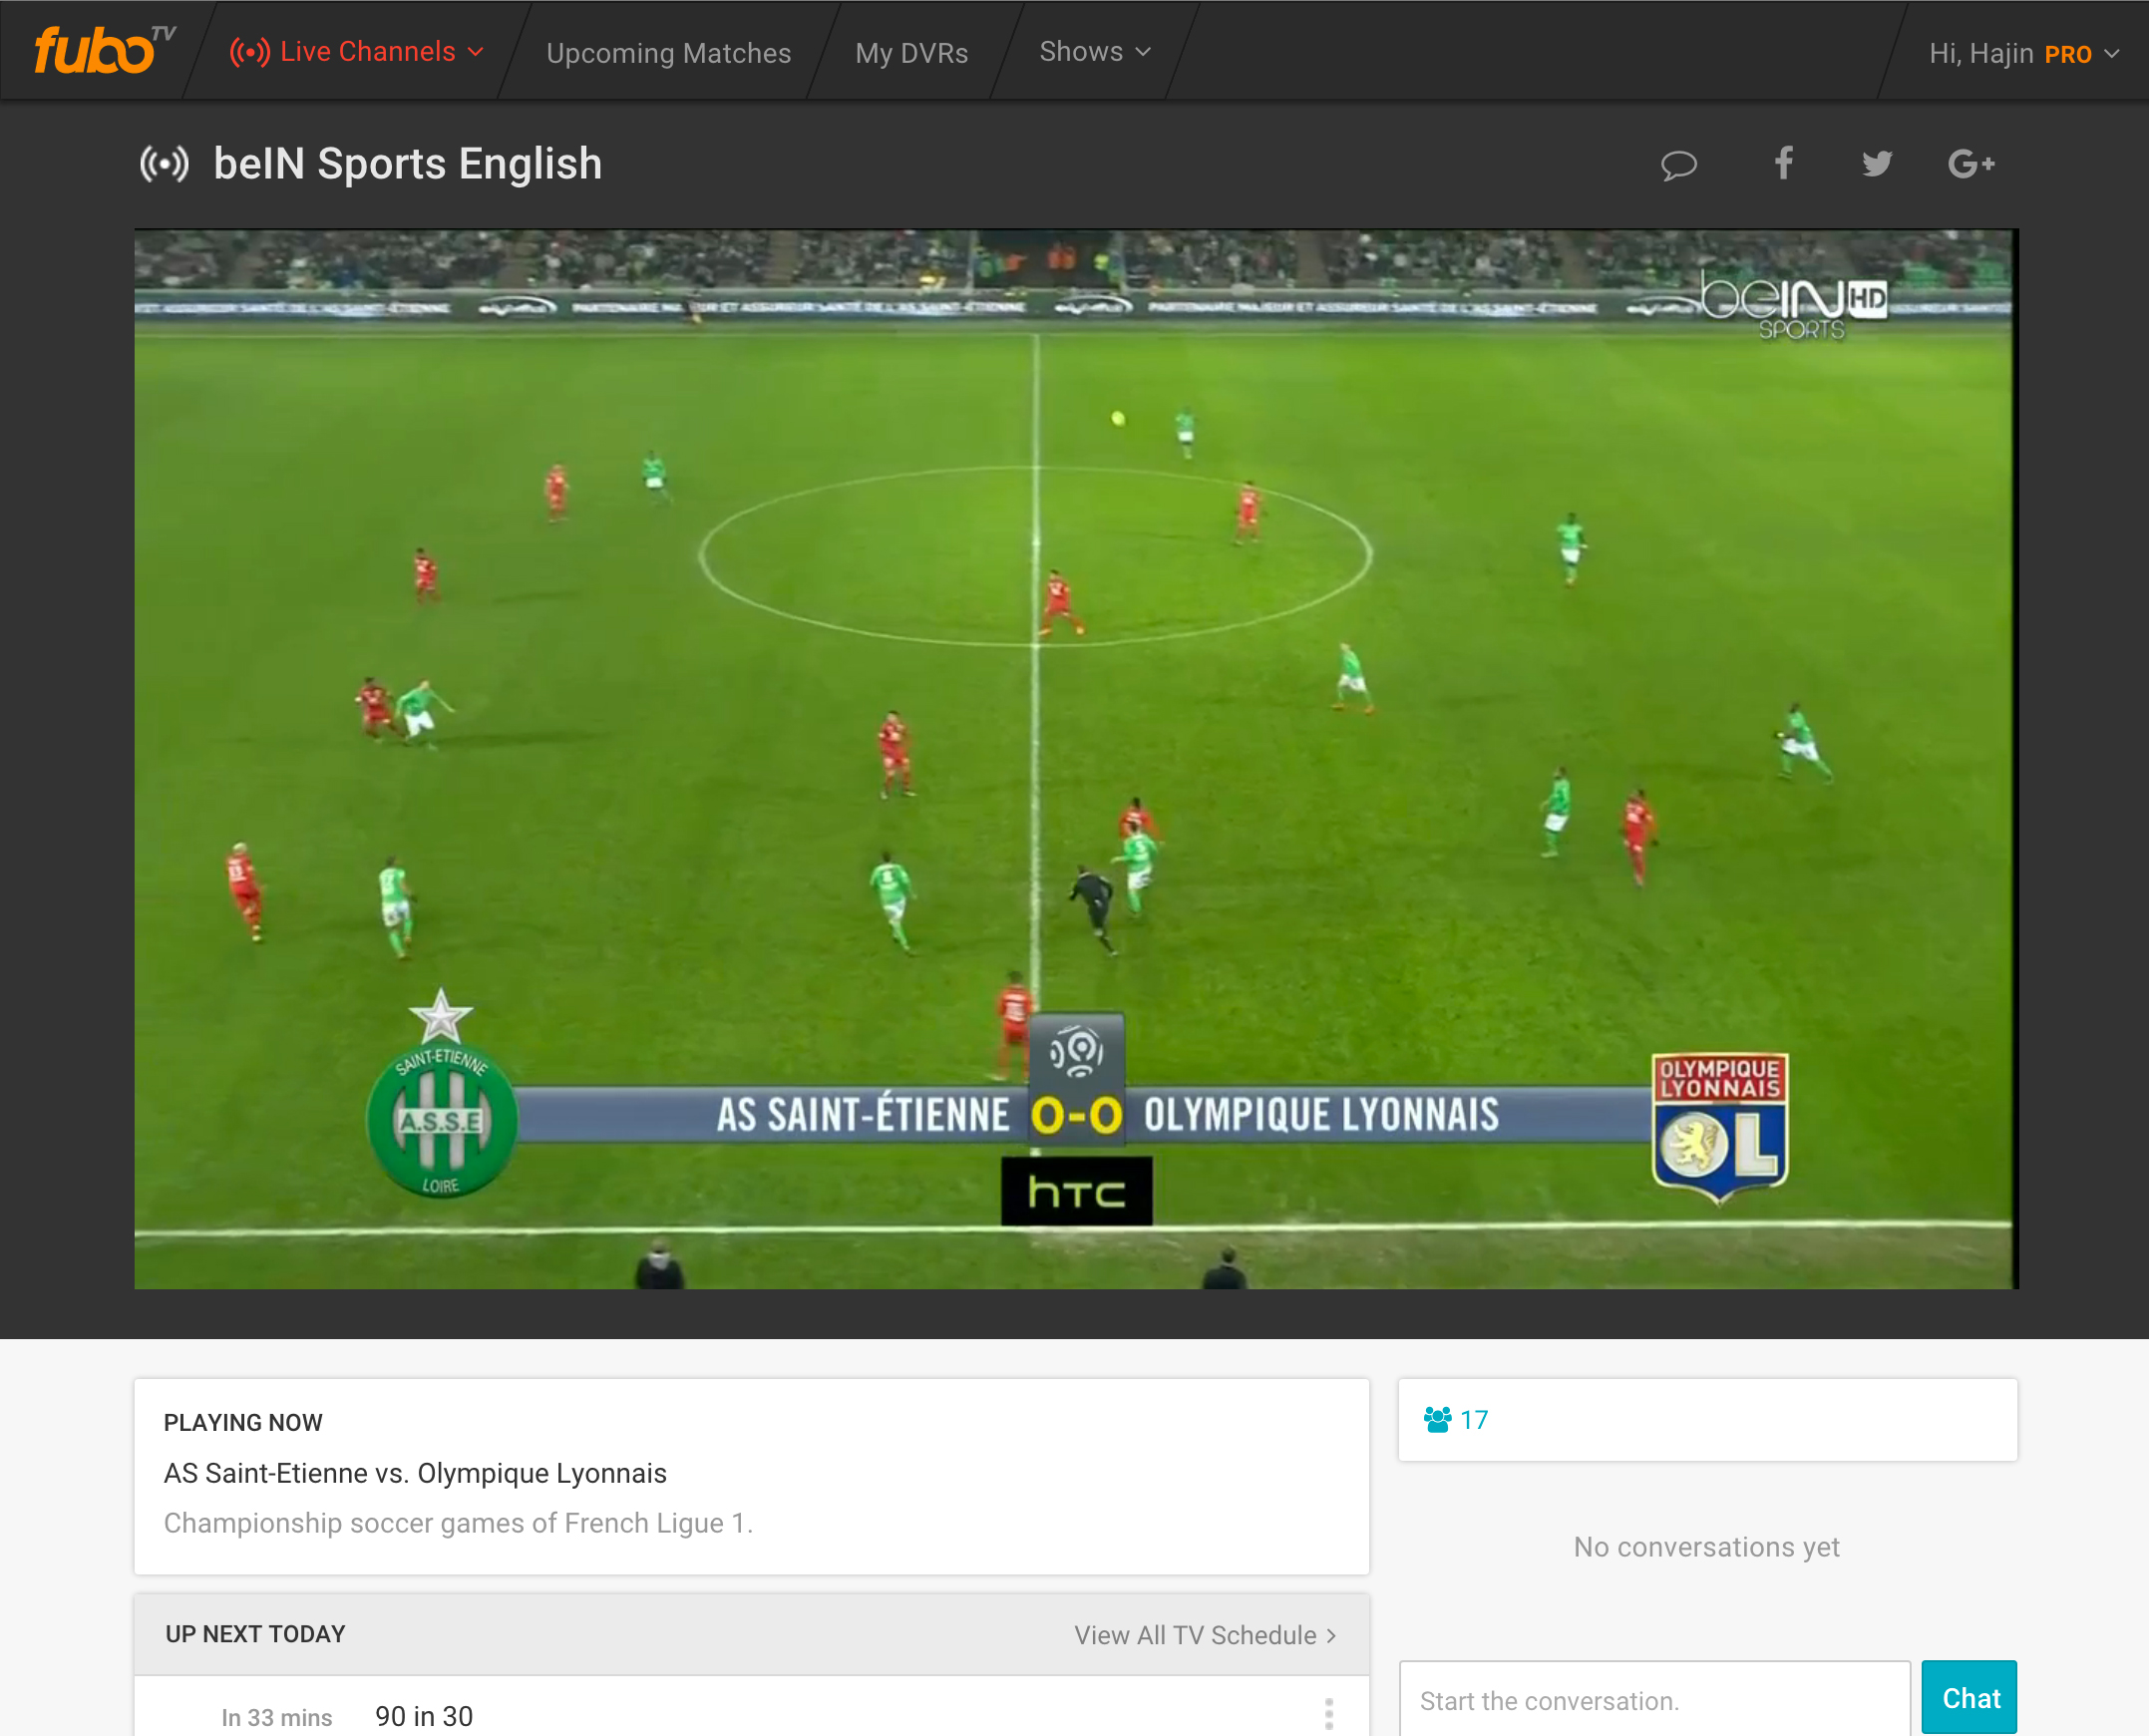 Leaf in the Wild: Leading Soccer Streaming Service fuboTV Scales its